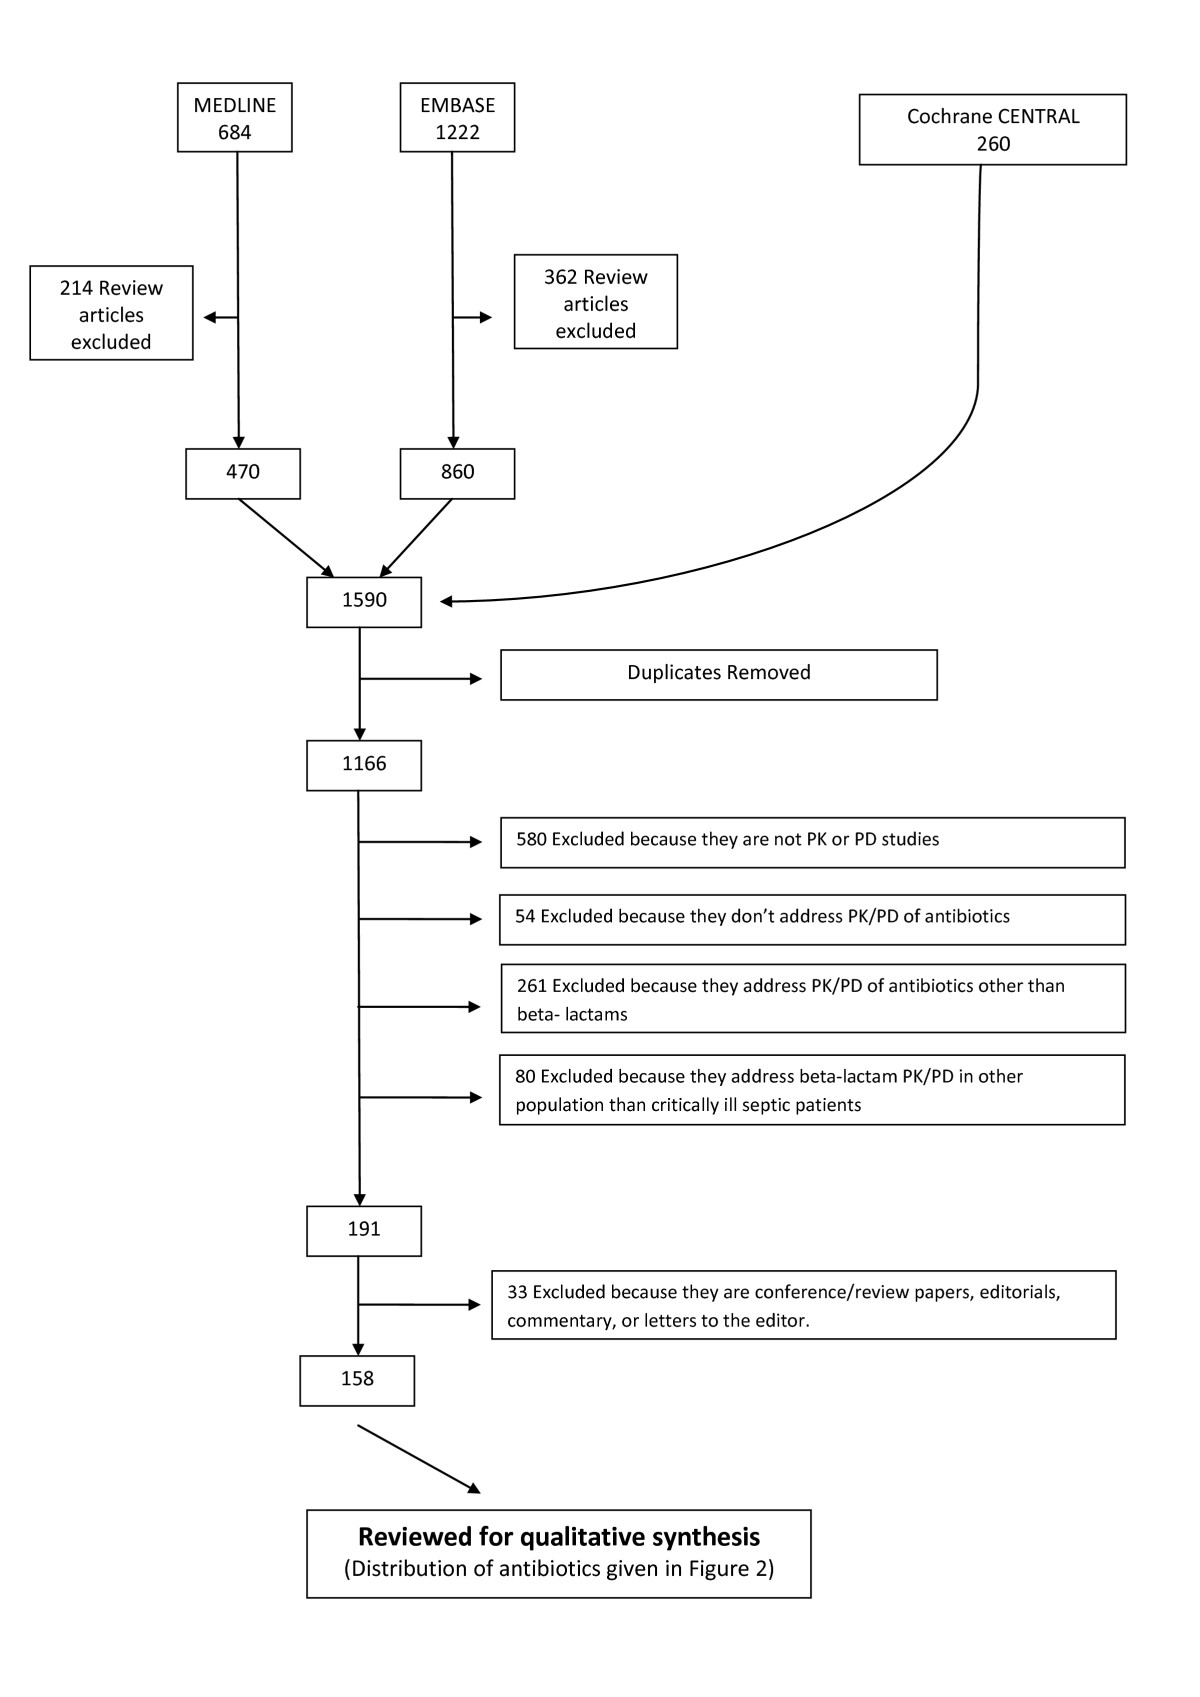 http://static-content.springer.com/image/art%3A10.1186%2F2110-5820-2-35/MediaObjects/13613_2012_Article_89_Fig1_HTML.jpg